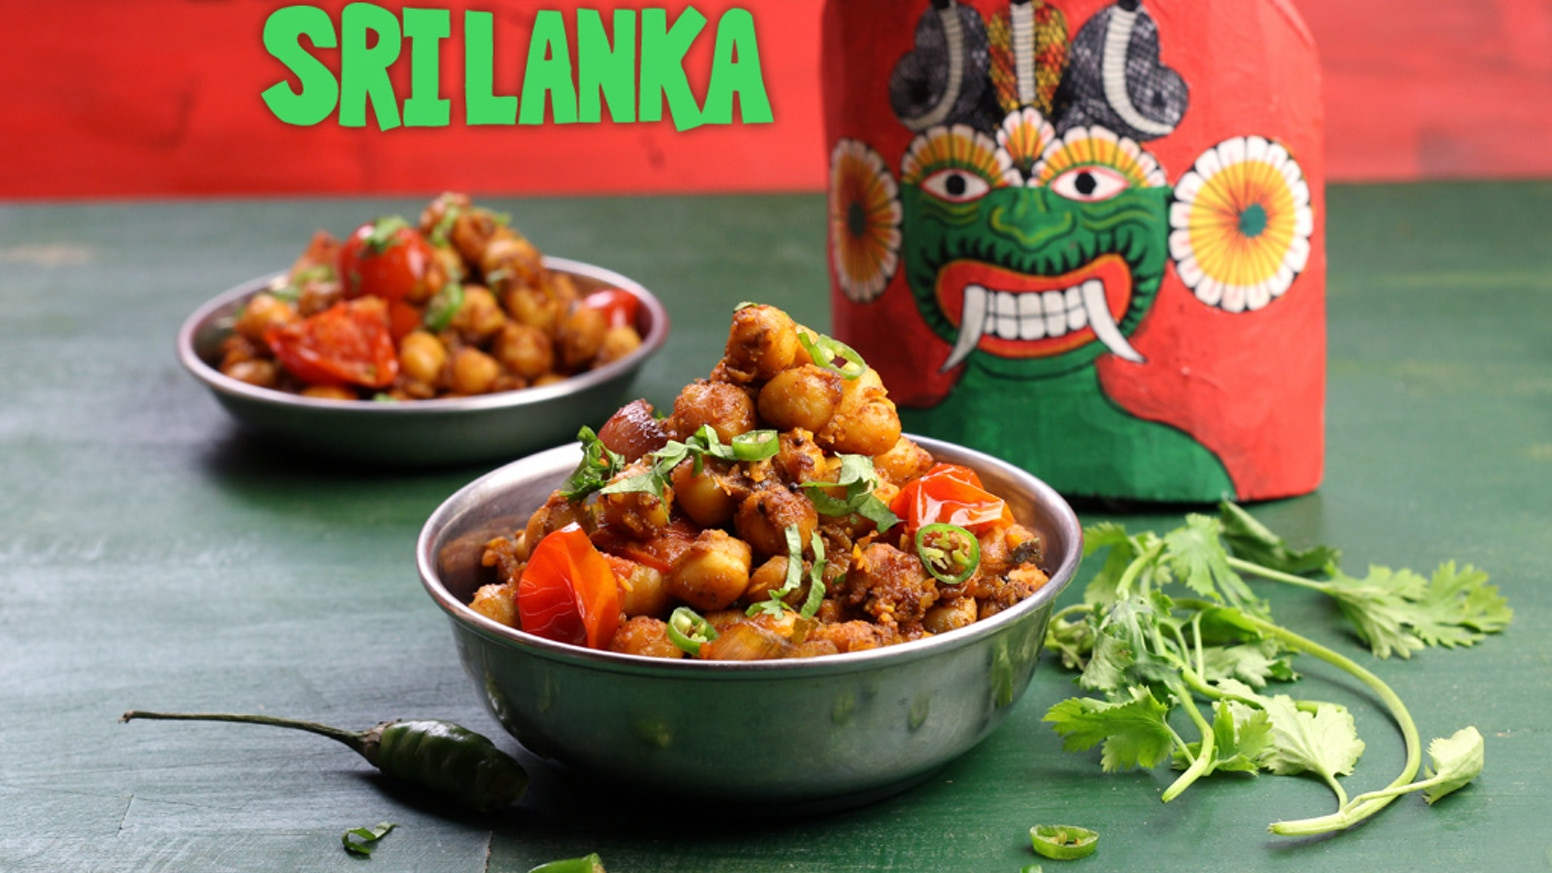 Taste paradise! 70+ vegan recipes inspired by 10 weeks of travel & culinary adventures in Sri Lanka!